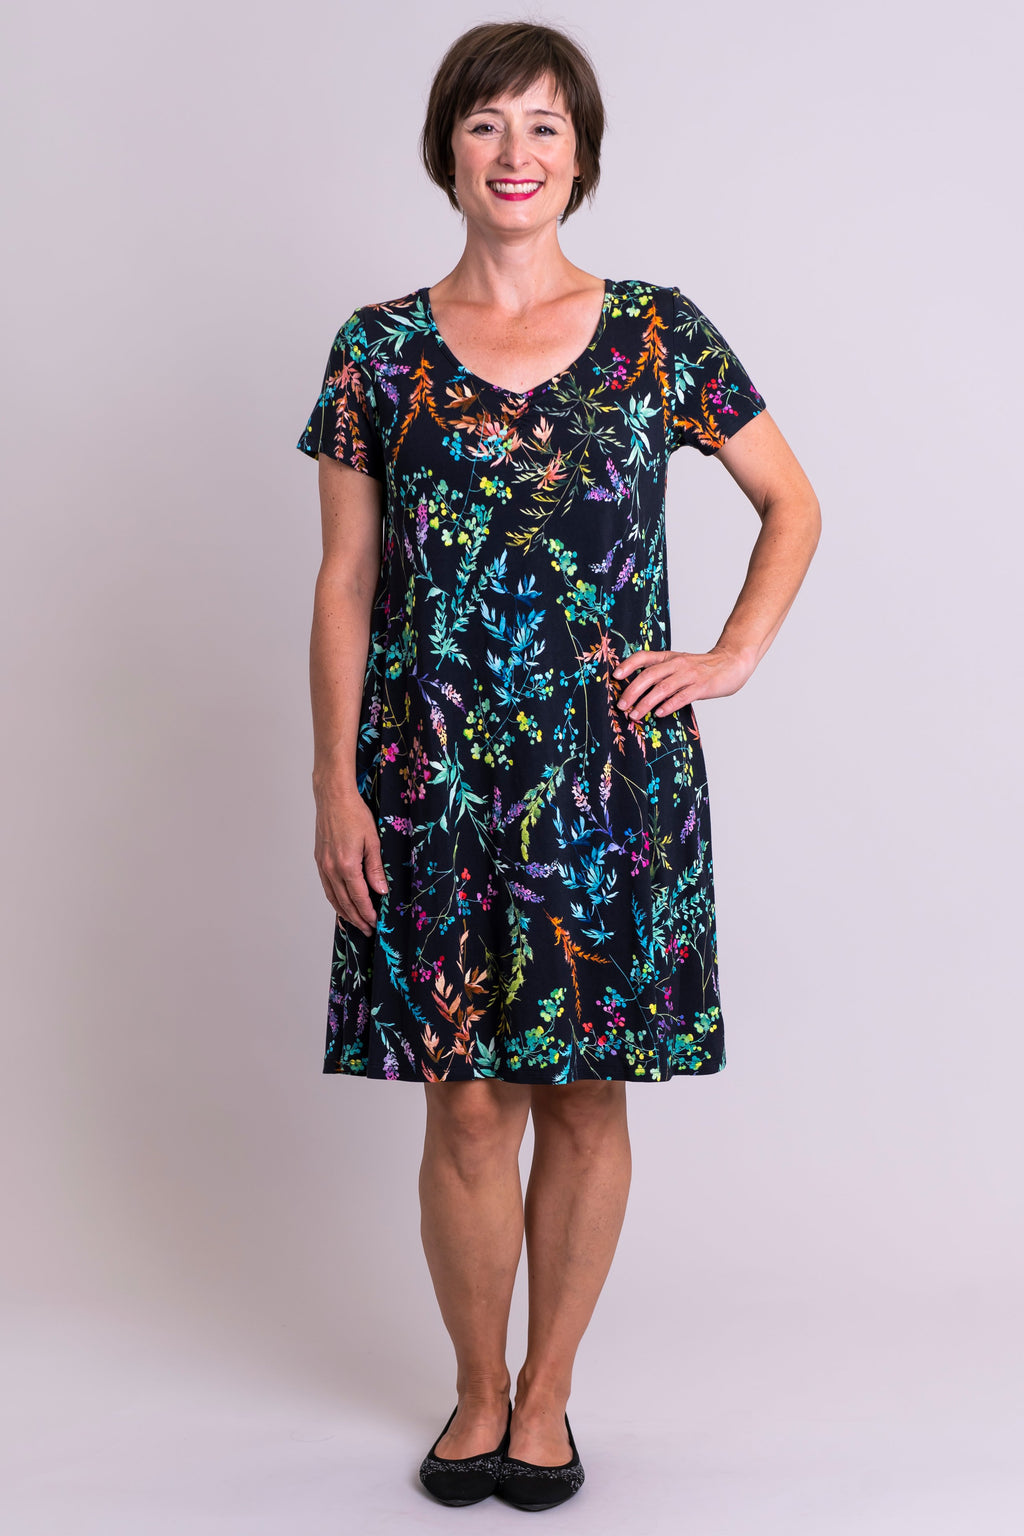 Nala Dress, Rainbow Valley, Bamboo